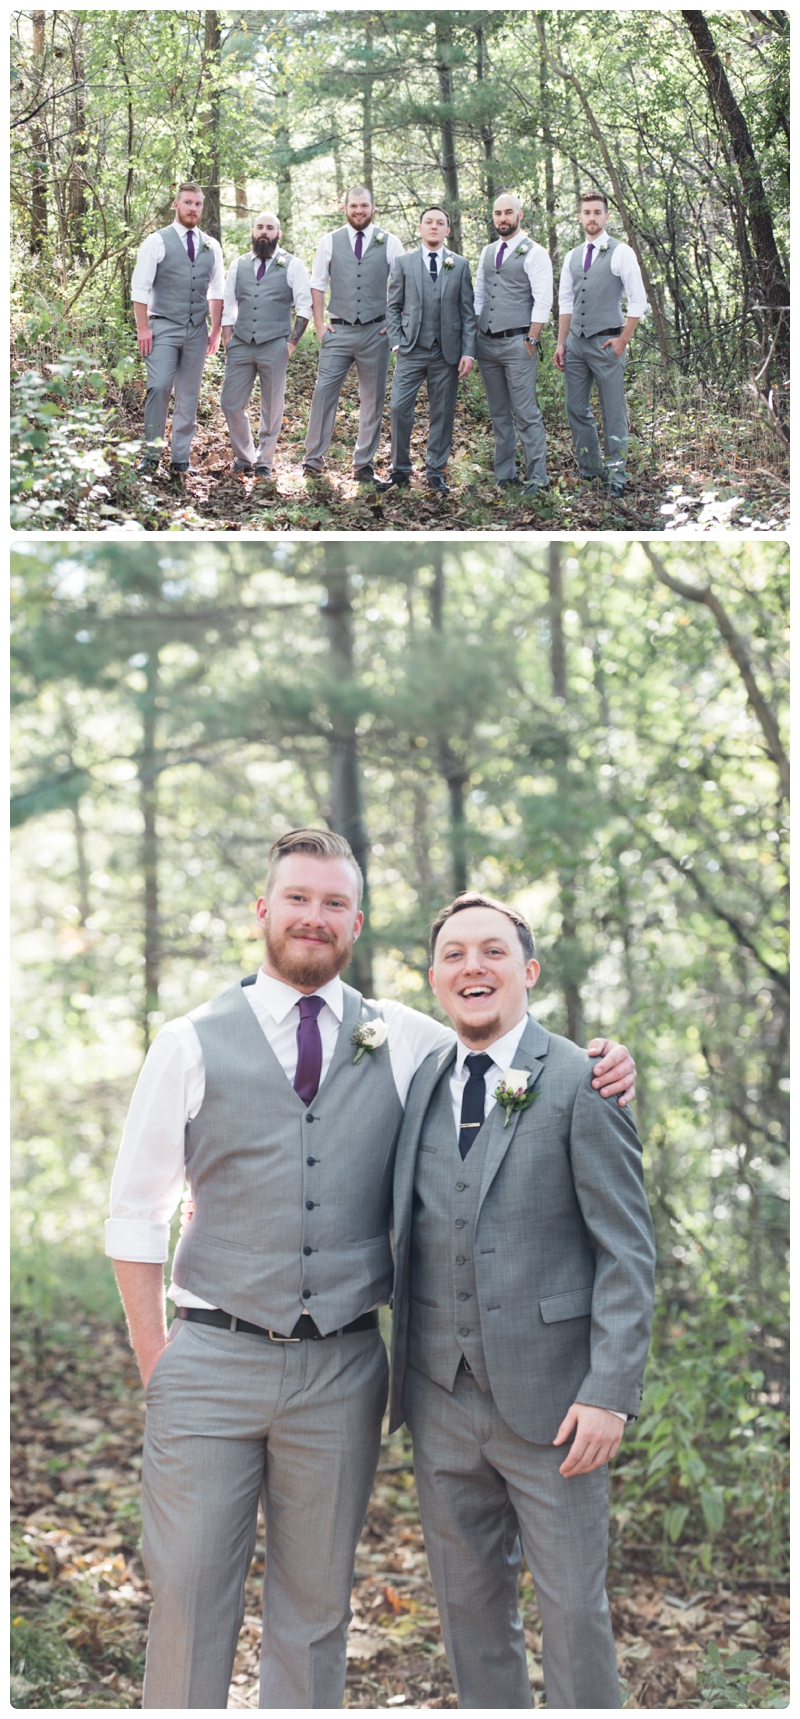 Backyard forest wedding in the Chicago suburbs by Rachael Foster Photography_0018.jpg